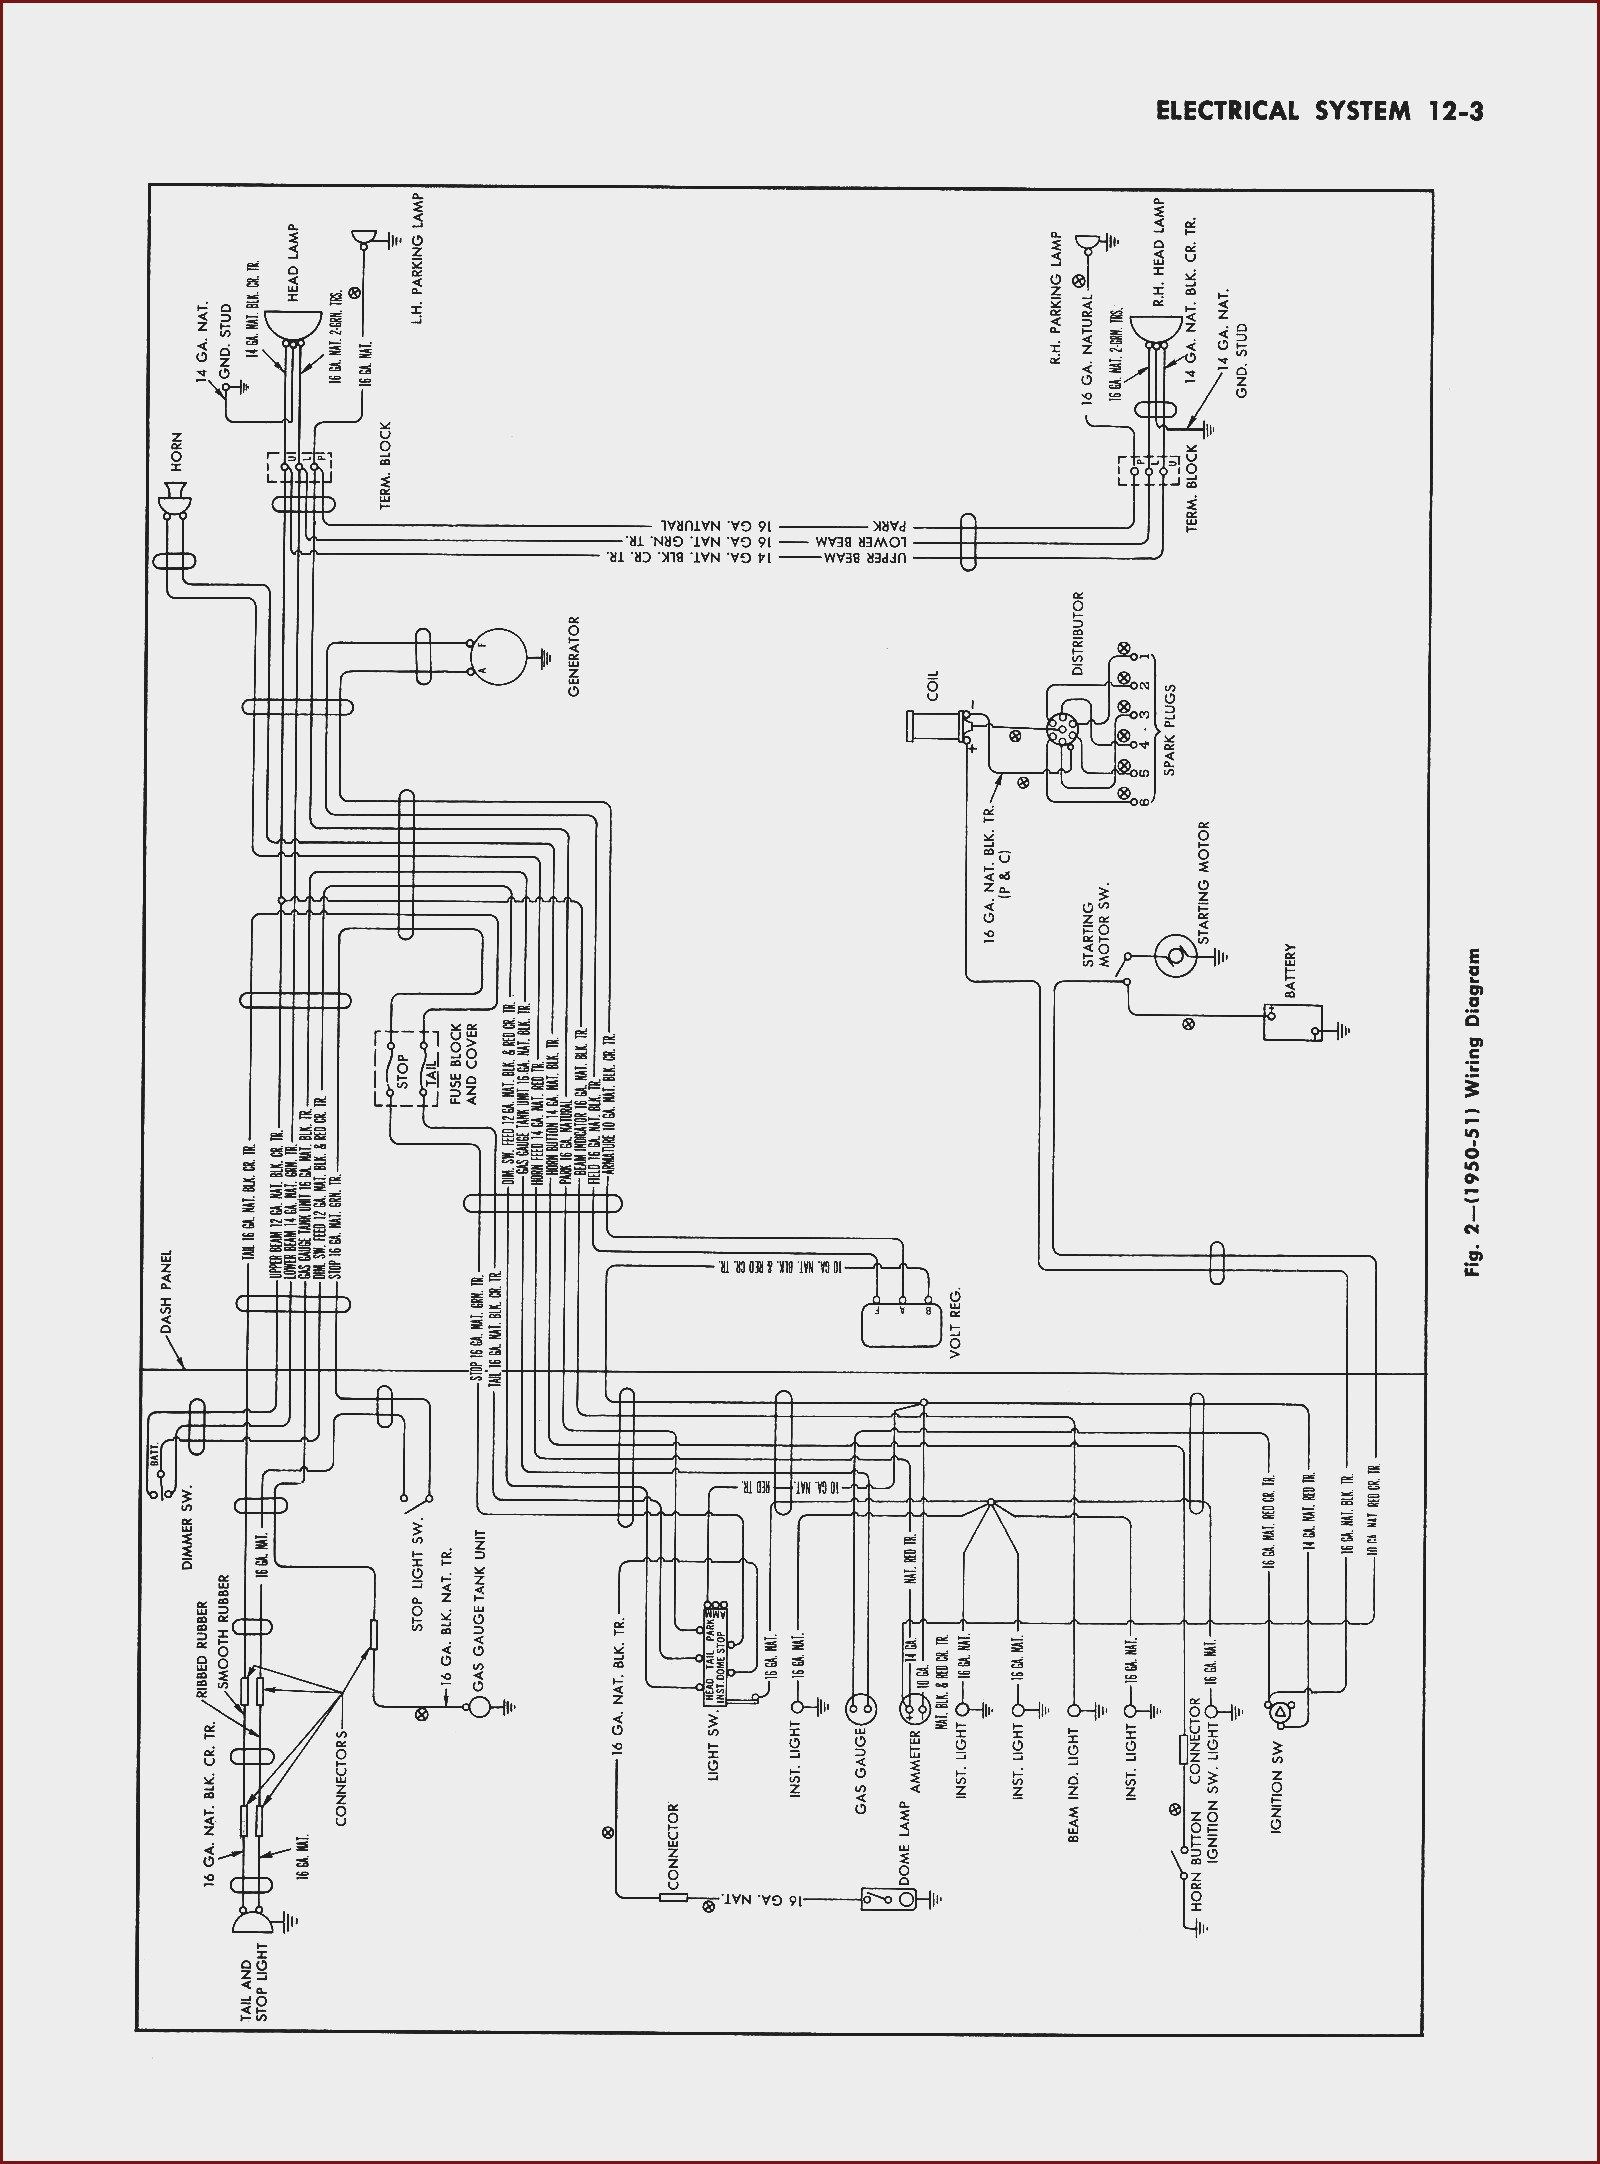 Car Components Diagram Bose Lifestyle 5 Wiring Diagram at Manuals Library Of Car Components Diagram